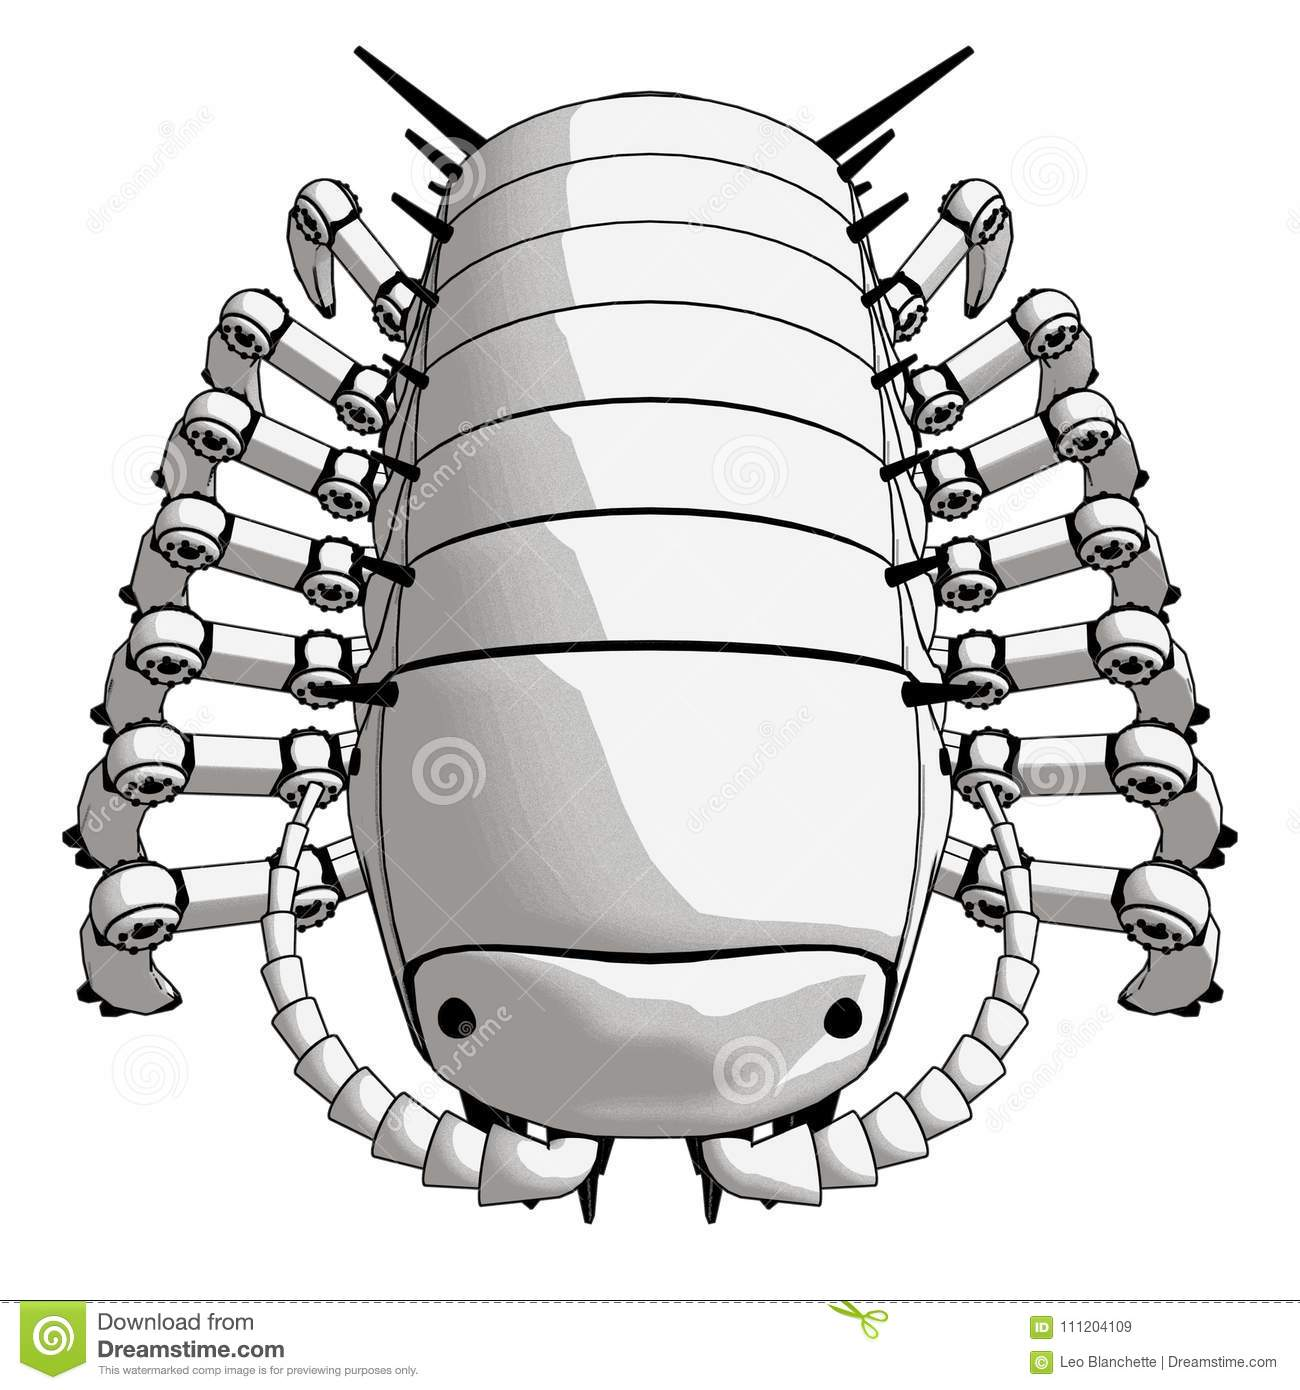 Robot Pillpug Top Front View Stock Illustration